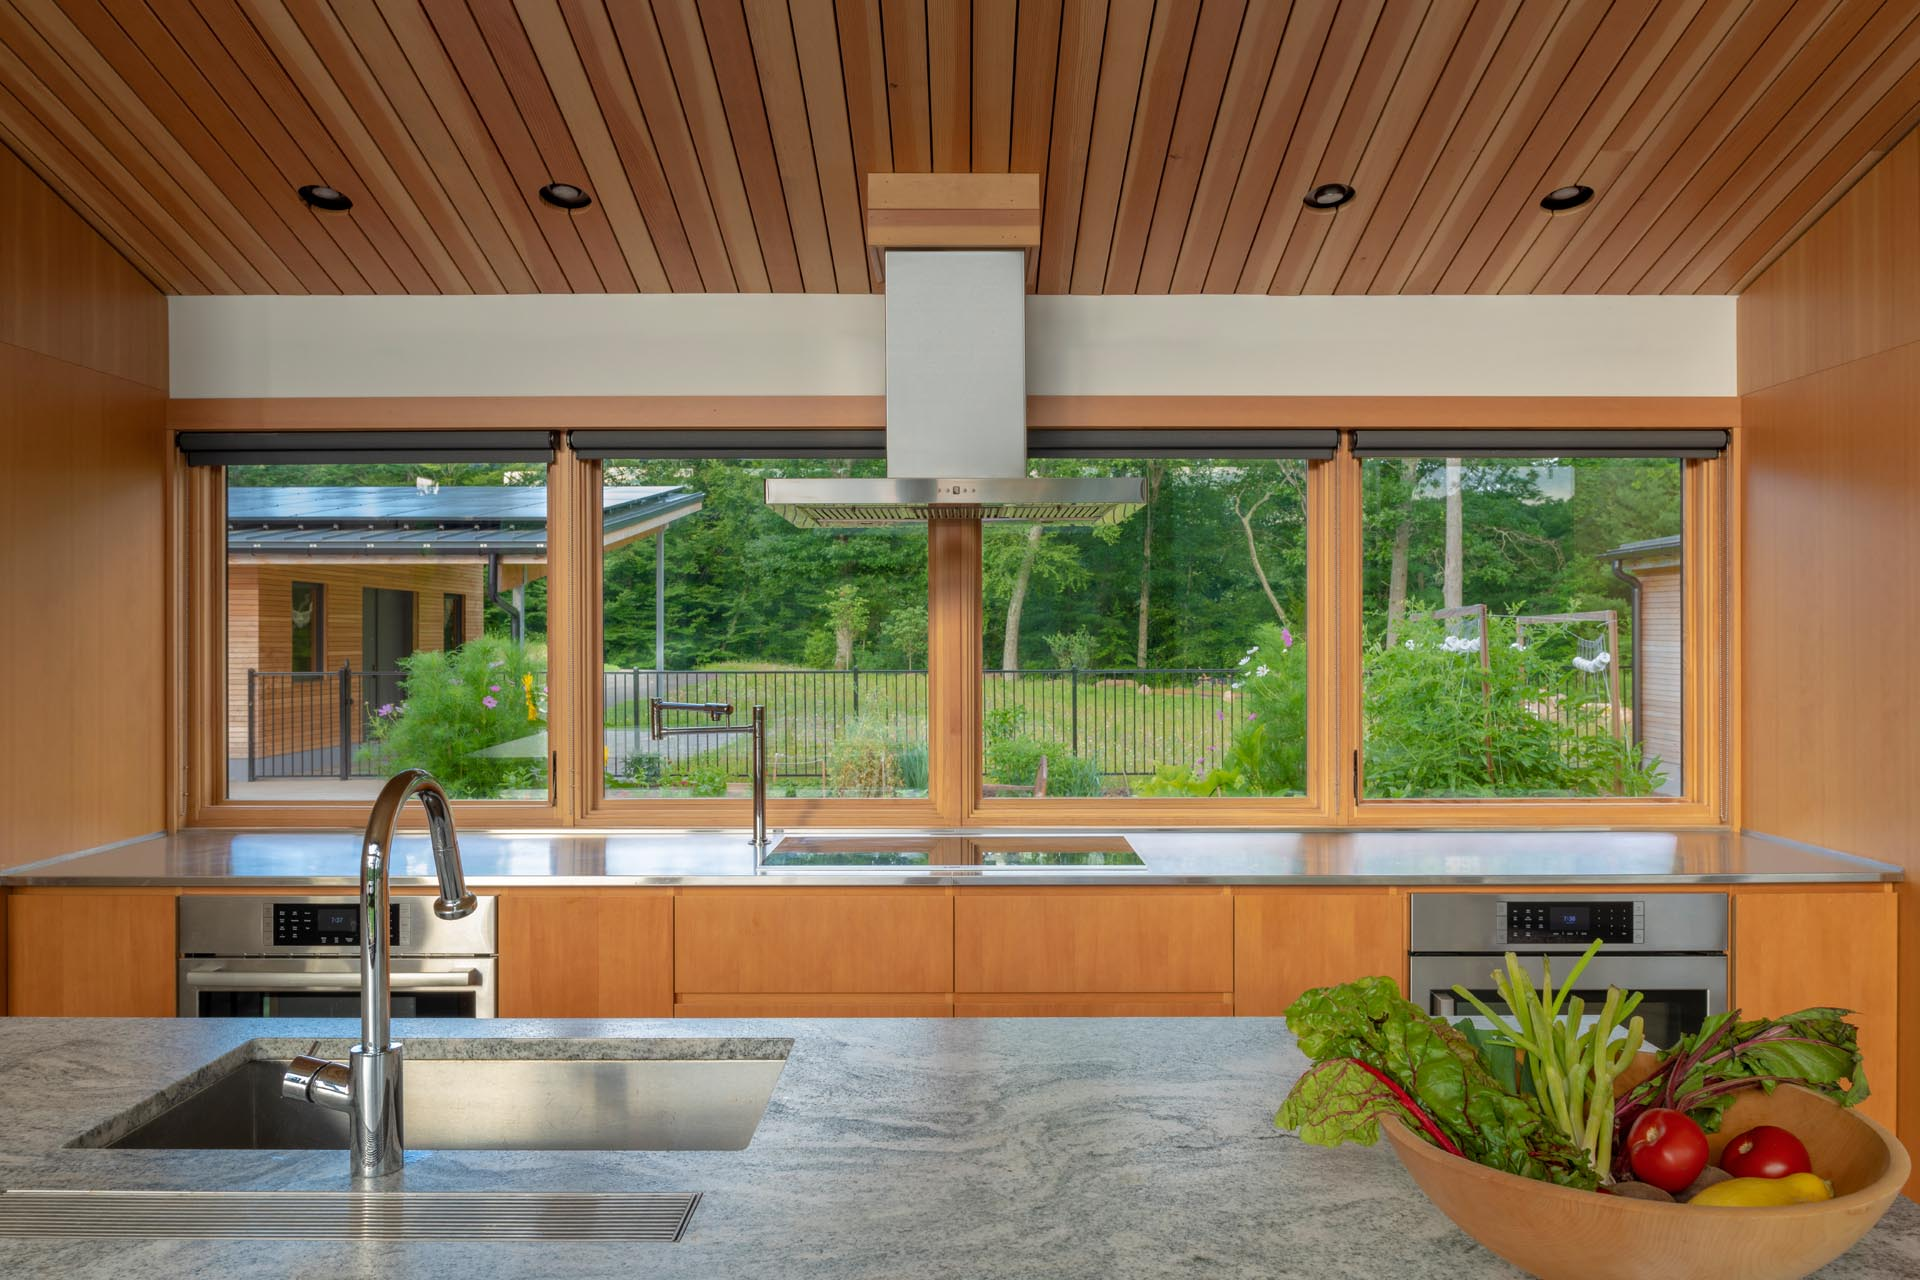 The kitchen has a large island with an undermount stainless steel sink, while windows look out to a courtyard and the workshop.